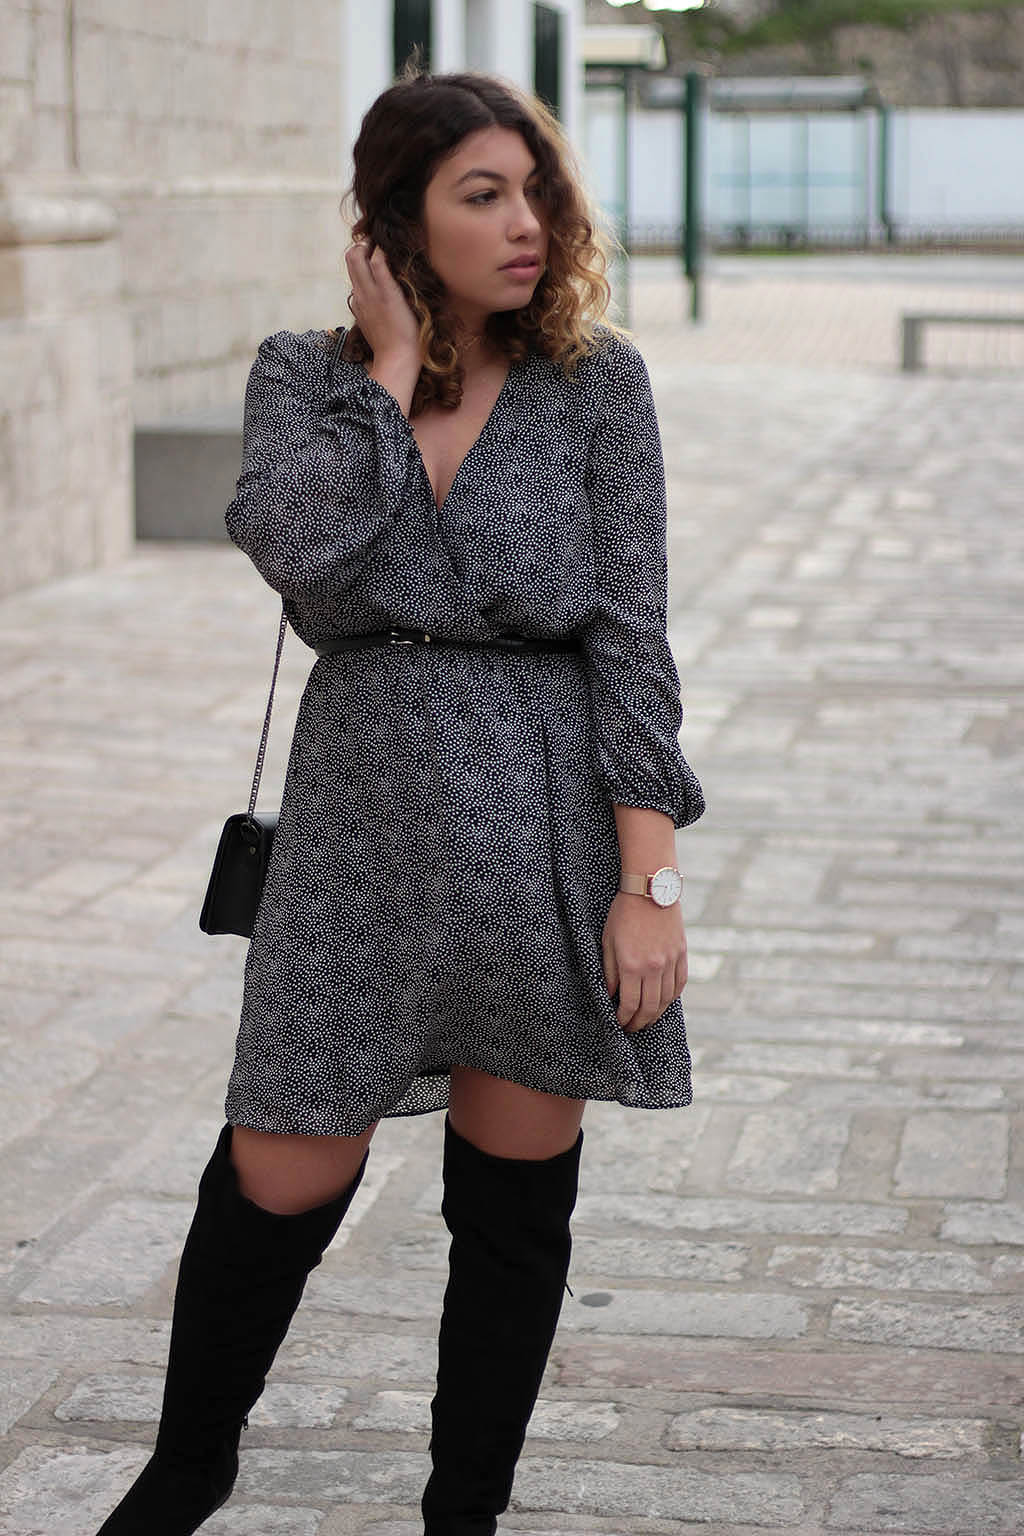 style-mode-fashion-look-blog-tenue-idee-inspiration-conseil-robe-cuissardes